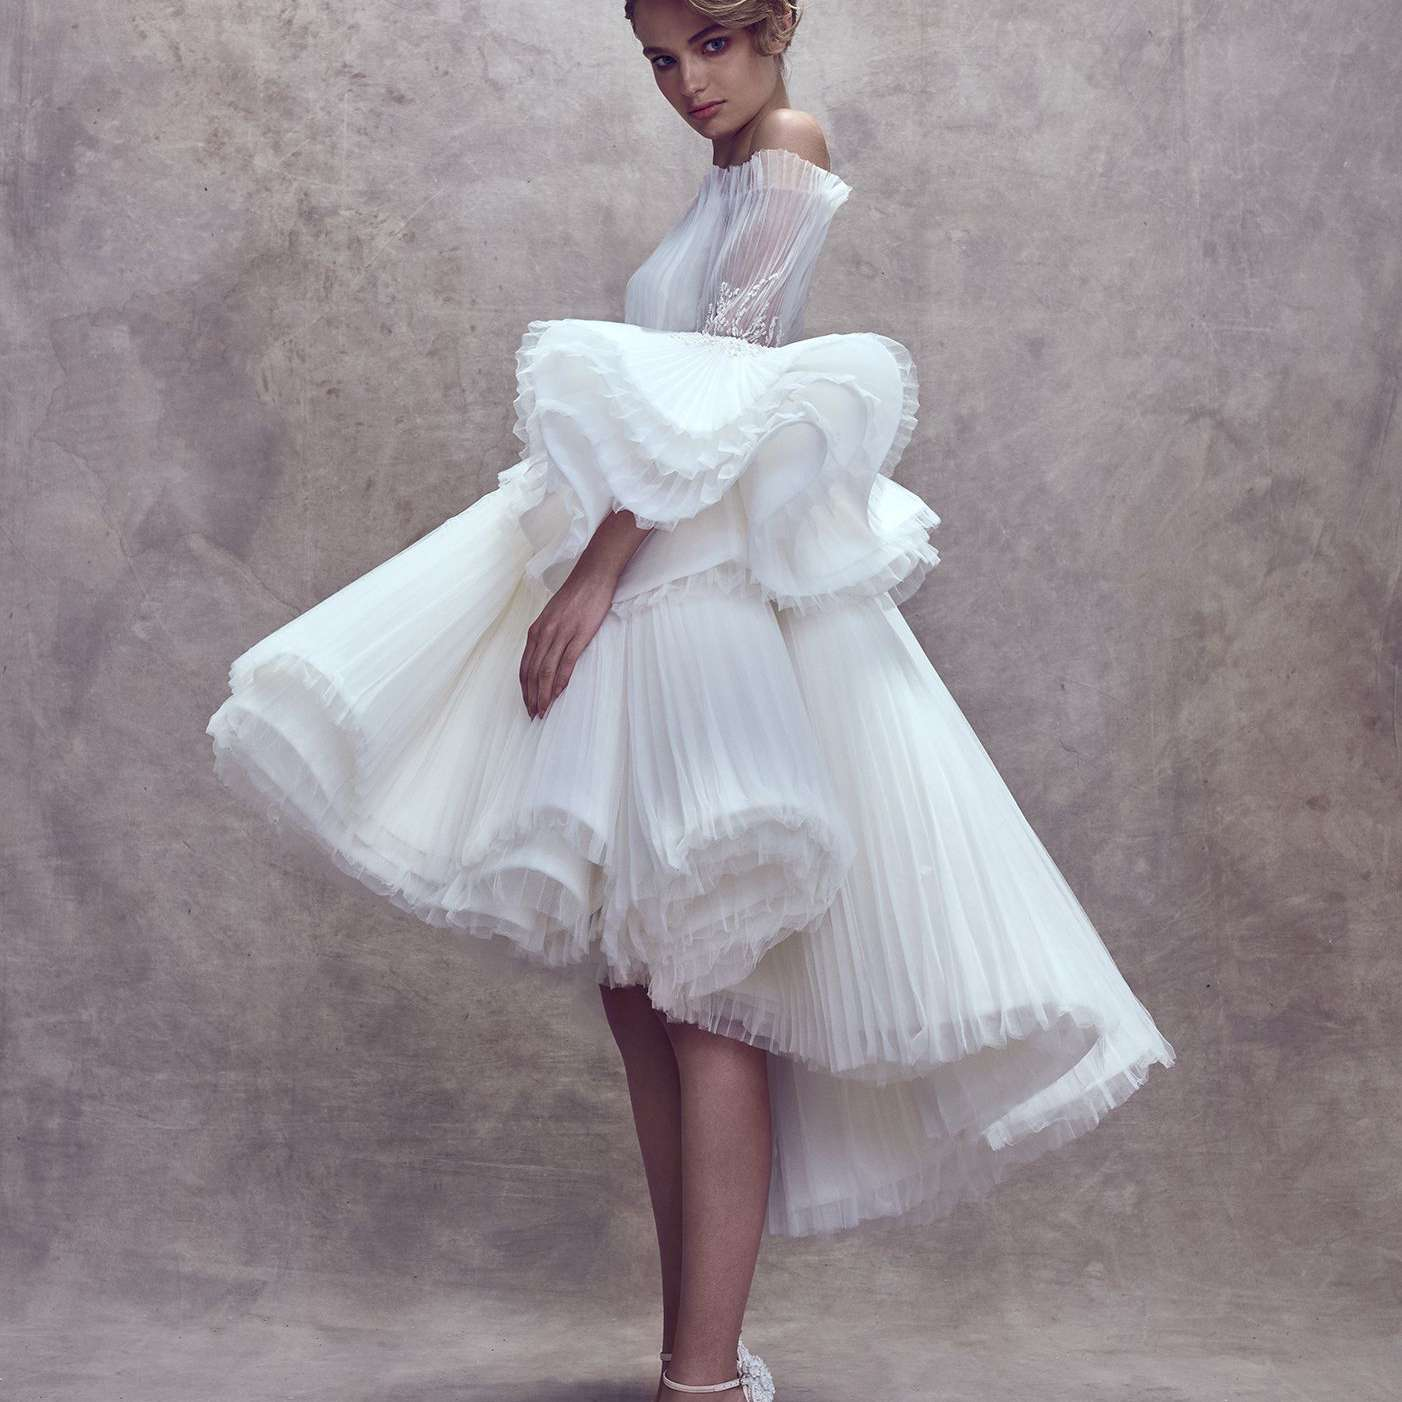 Model in off-the-shoulder dress with high-low layered tulle skirt and oversized sleeves